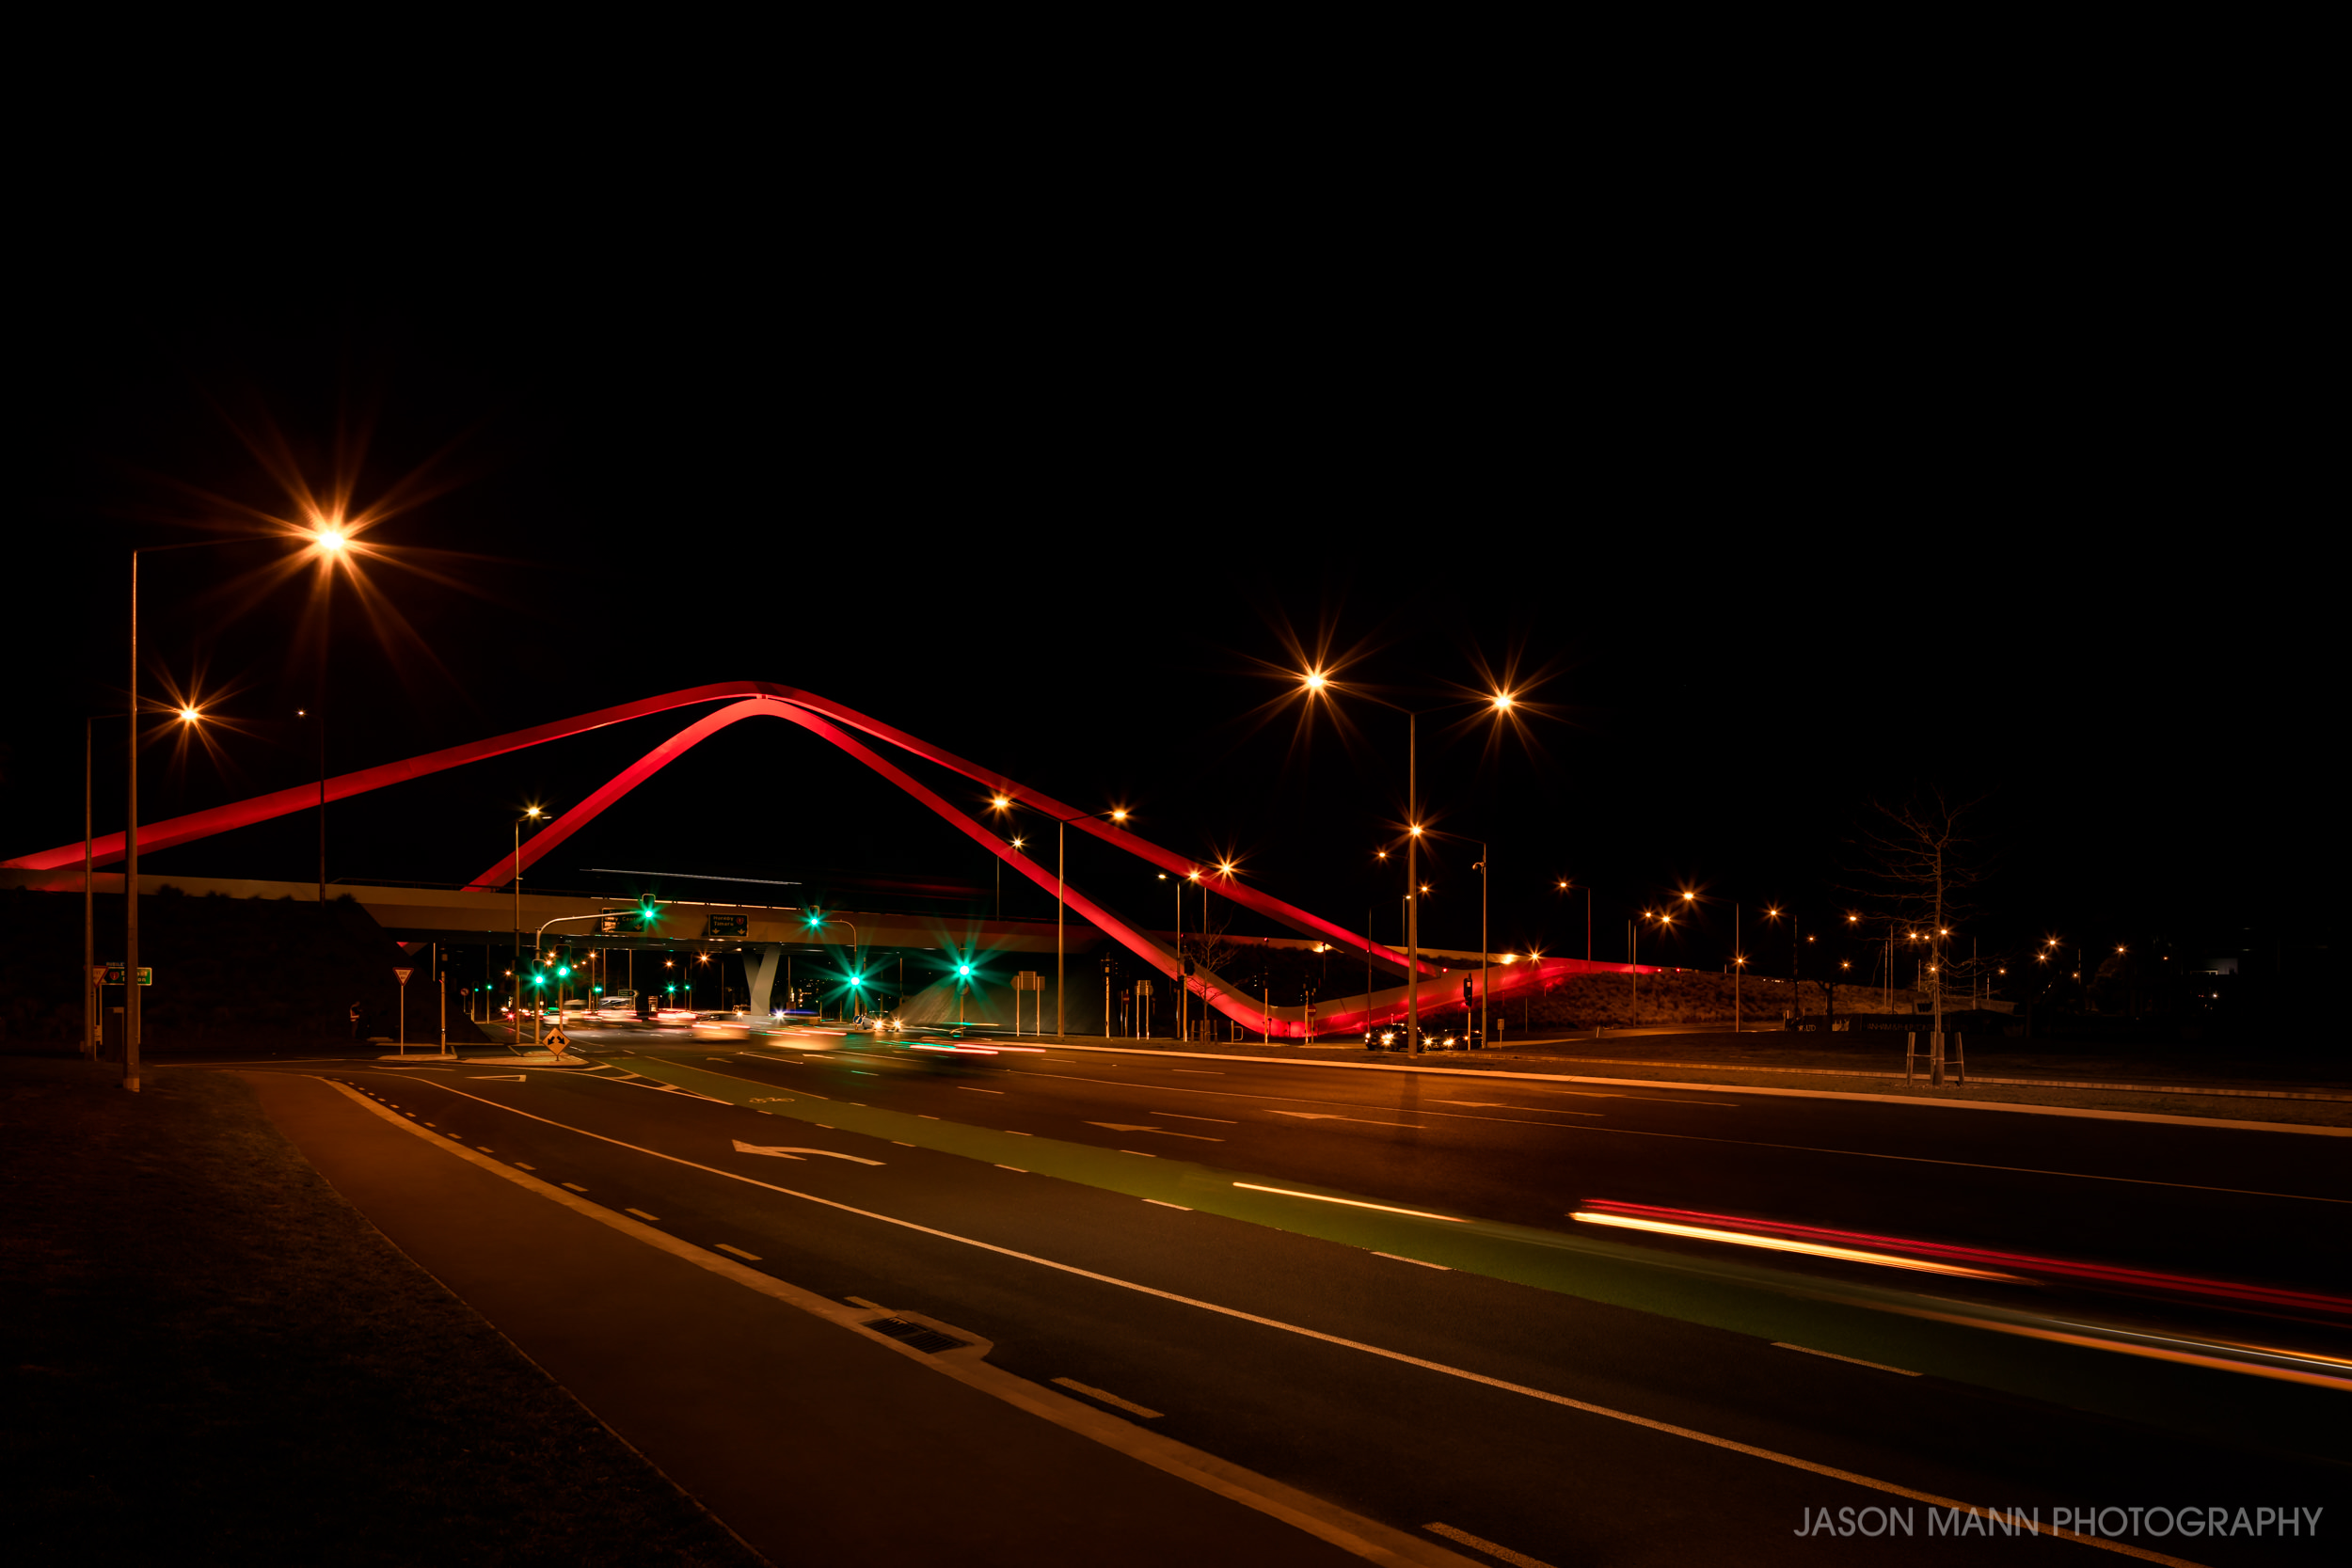 Jason_Mann_MemorialBridge_002.jpg